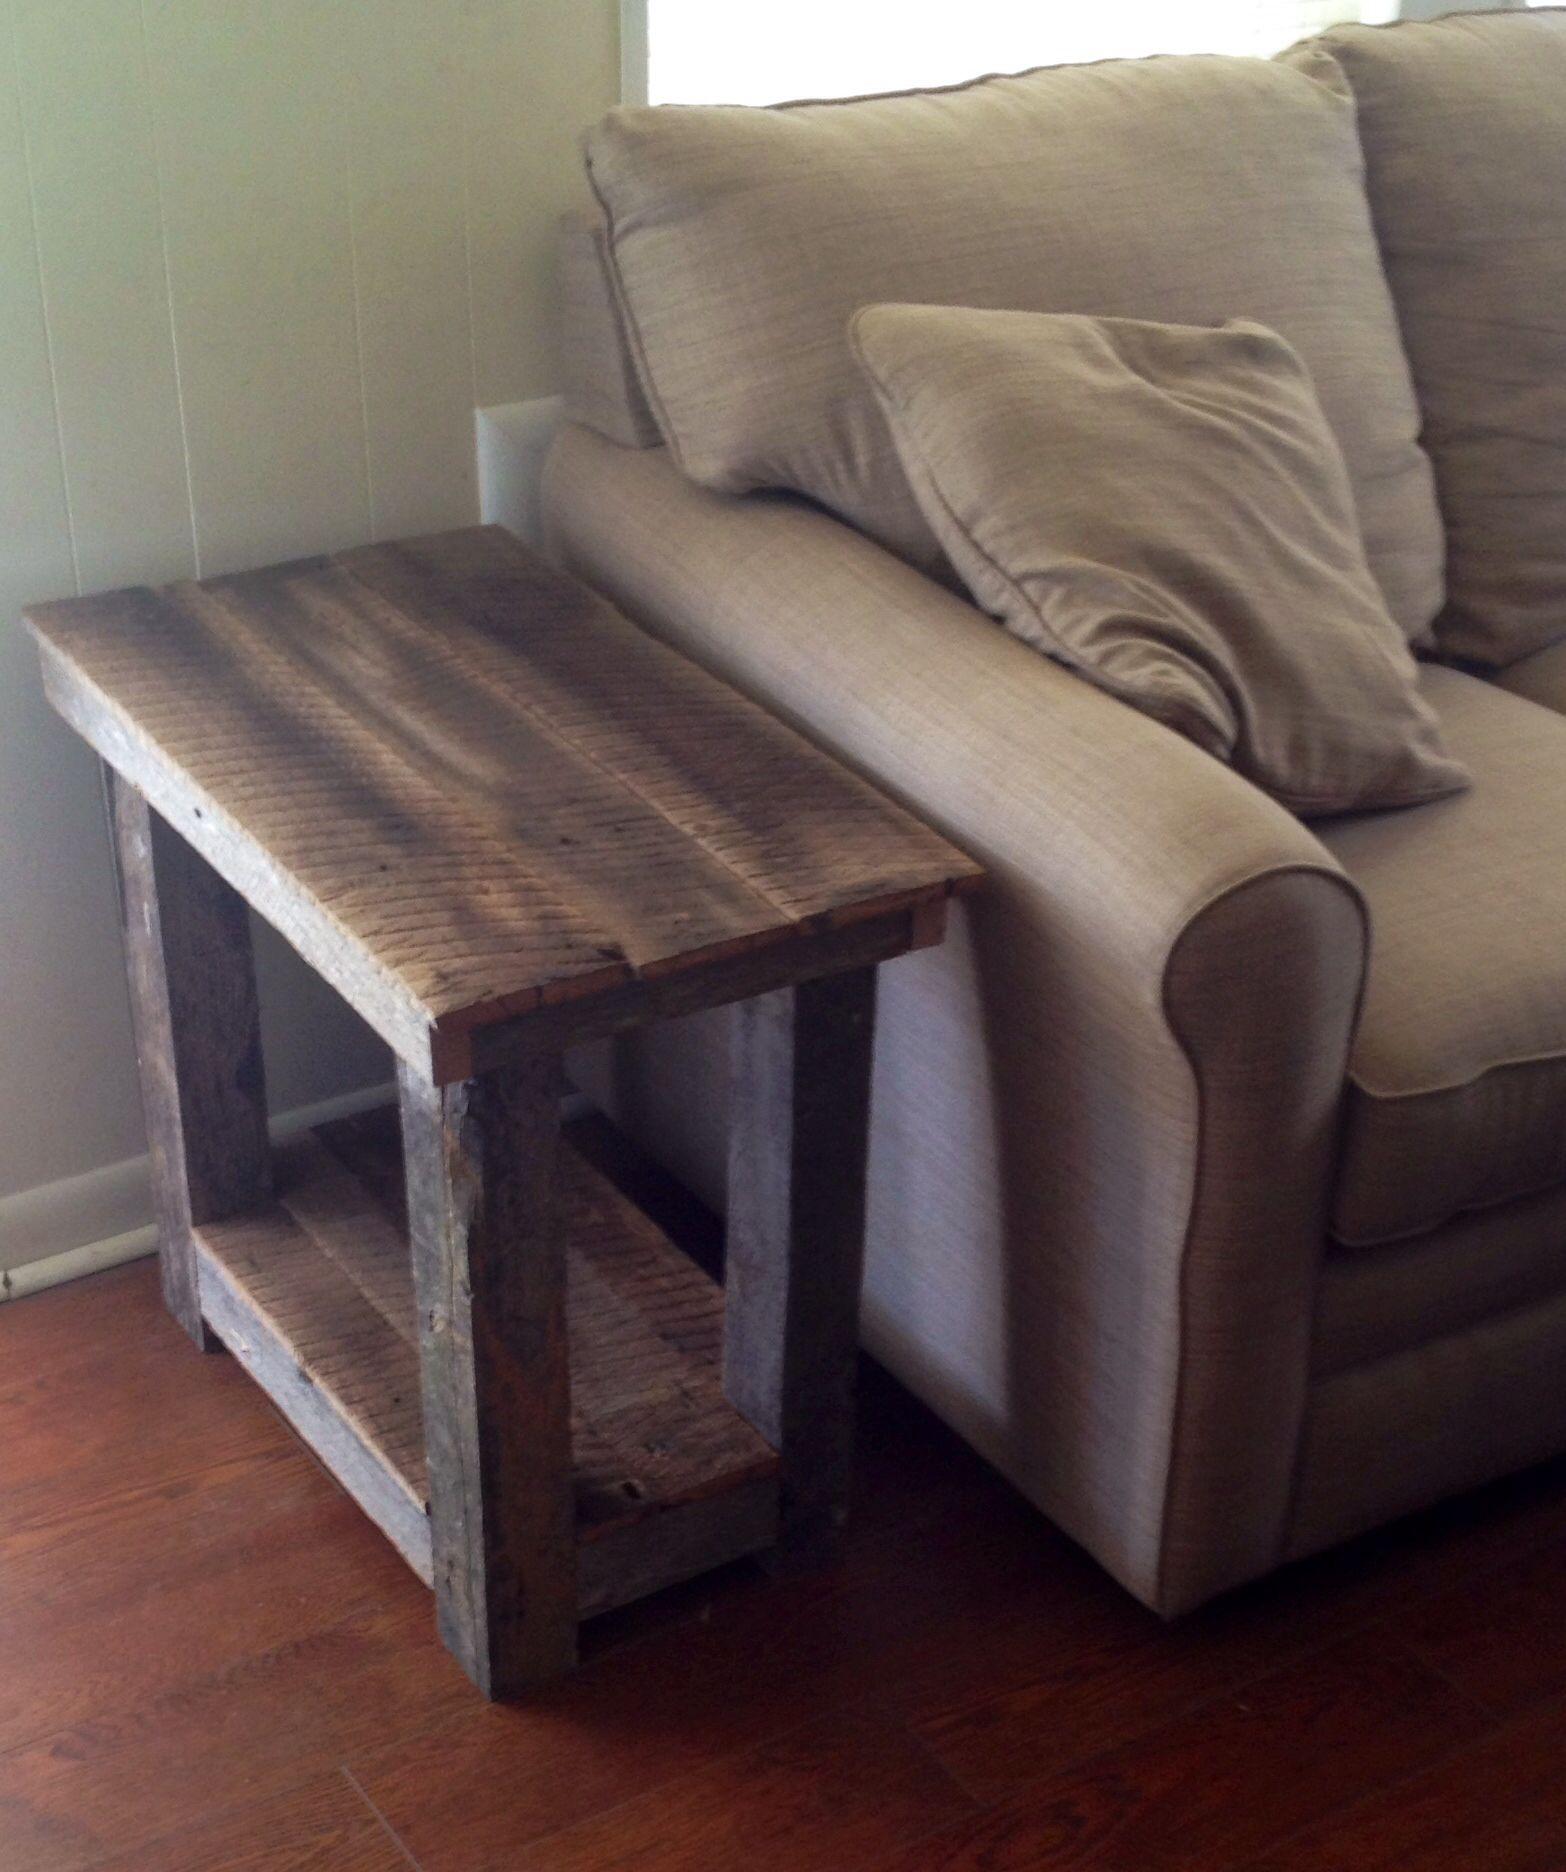 sofa side table wood patricia urquiola barn end i built from an old in my field